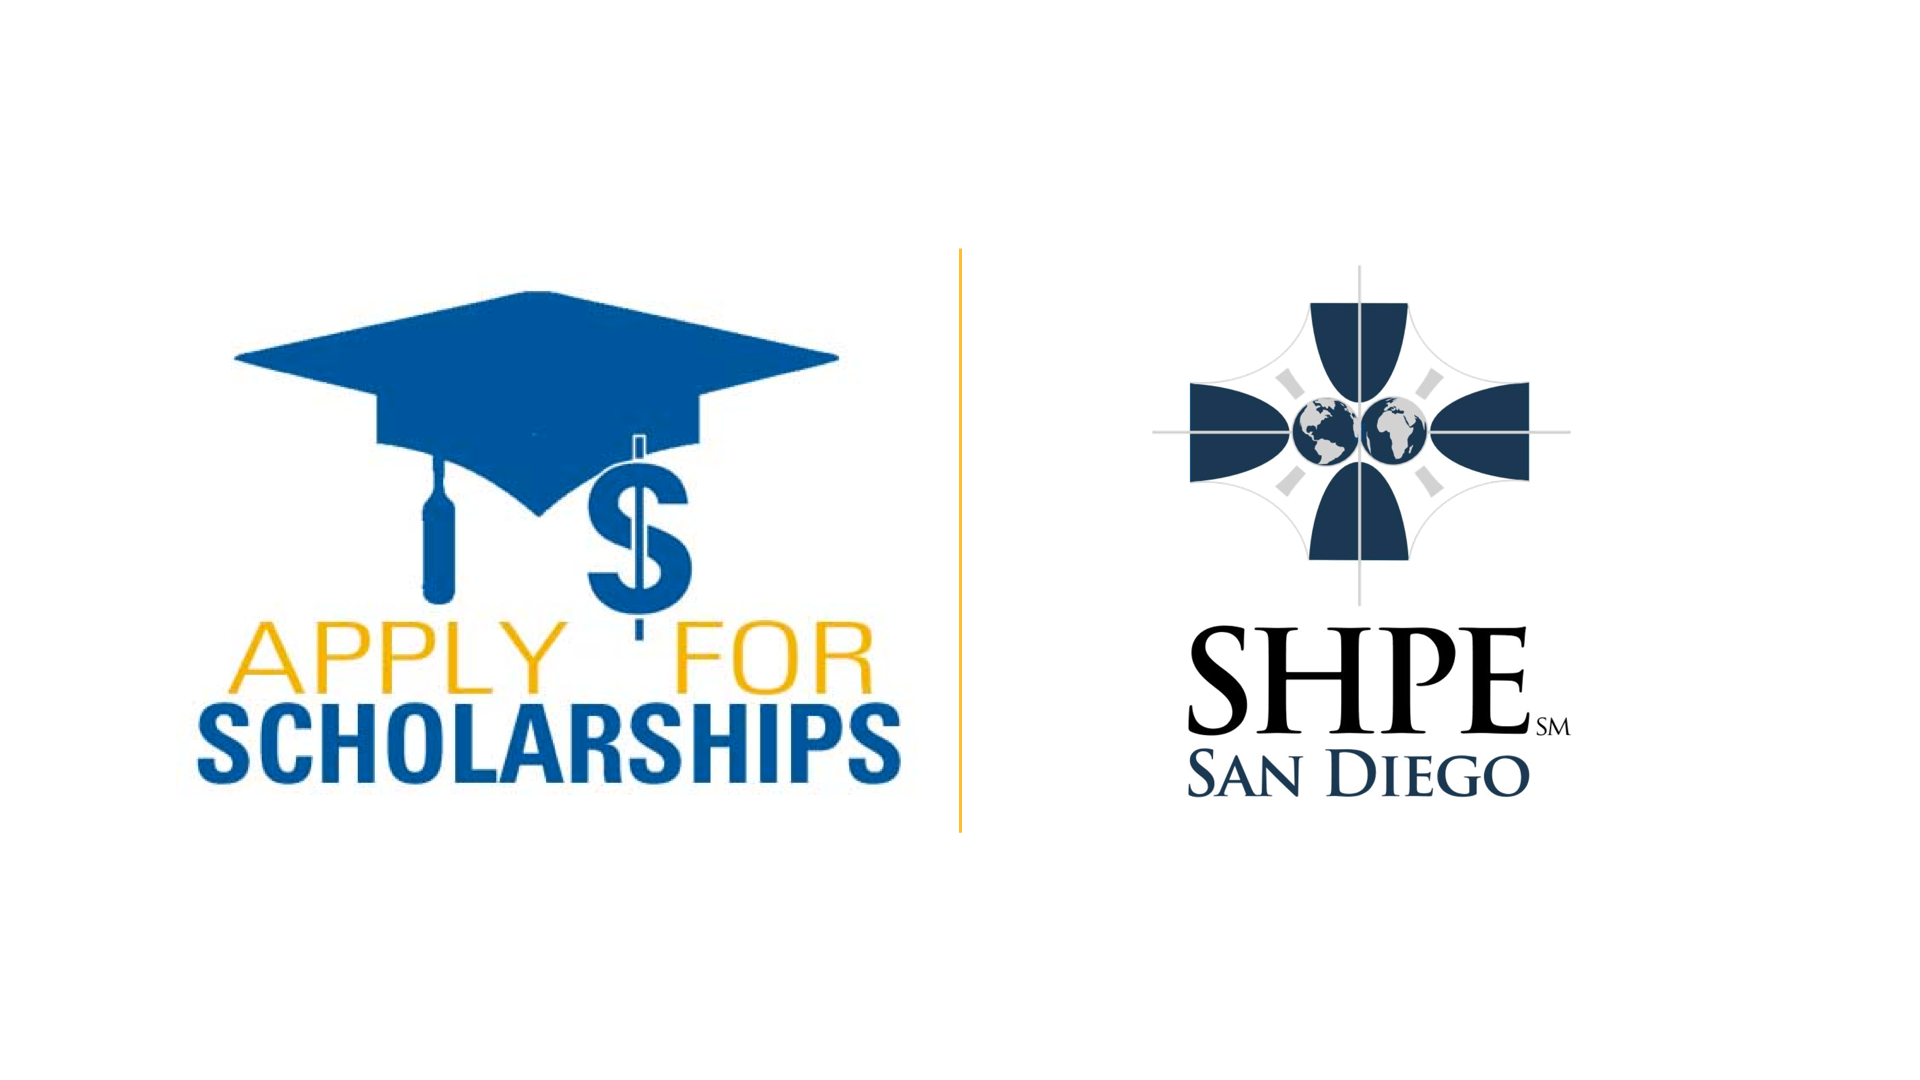 2019 SHPE San Diego Scholarships